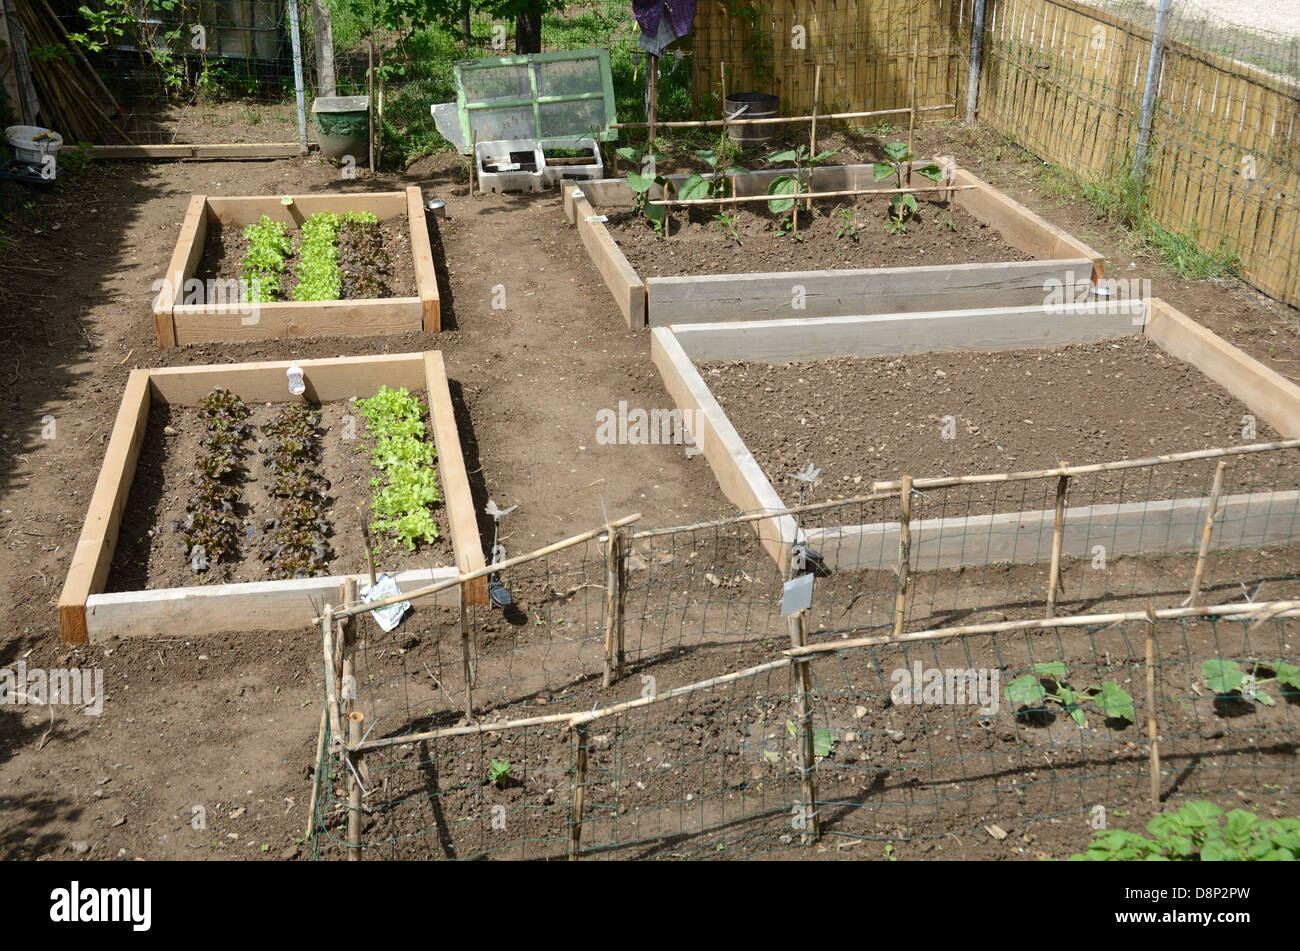 beds garden vegetable stock photos u0026 beds garden vegetable stock